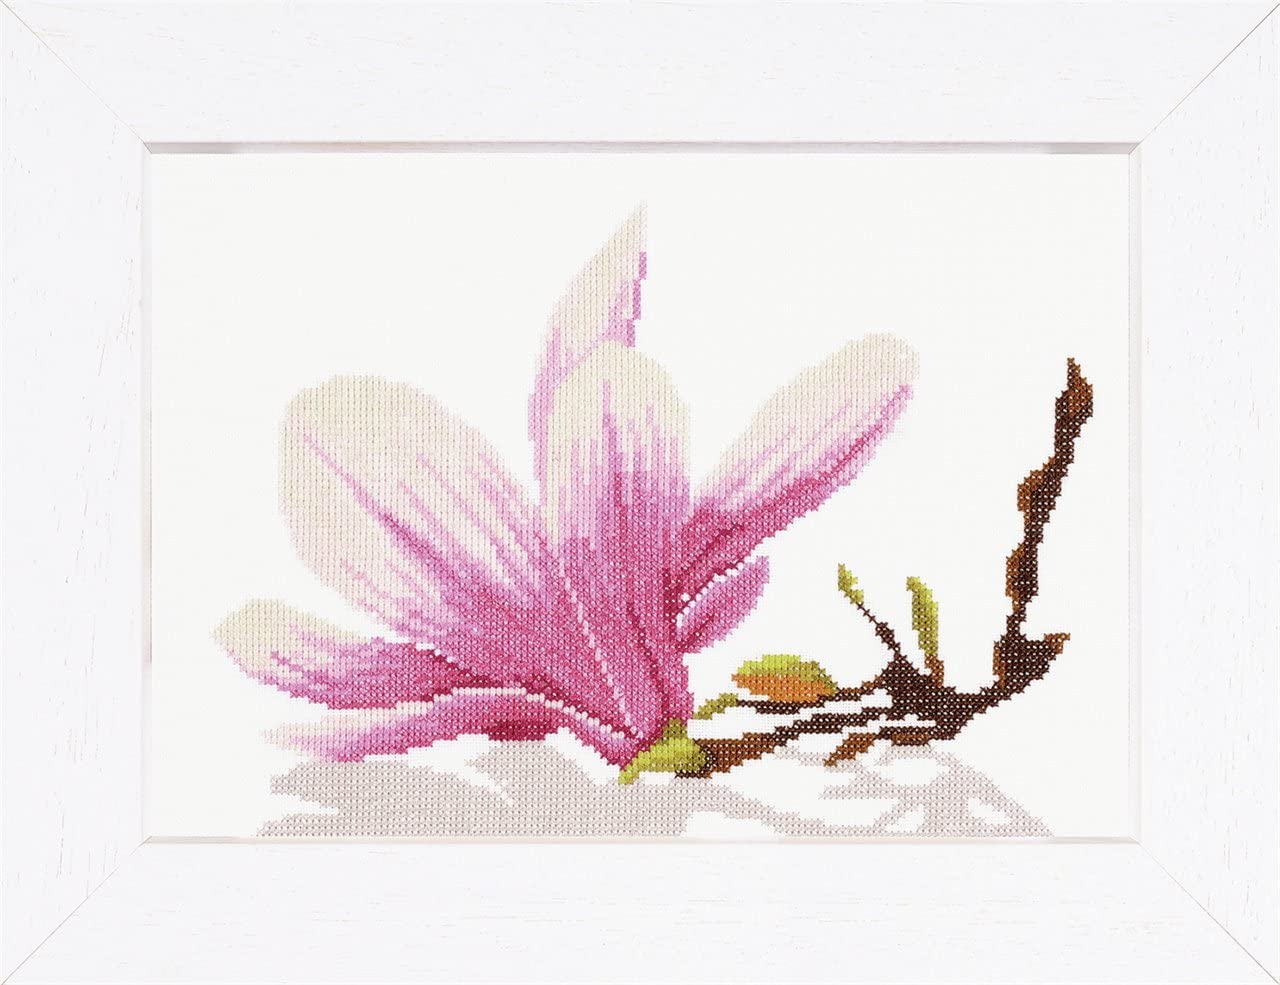 All items free shipping Lanarte 2021 Counted Cross Stitch Kit: Flower Twig Magnolia with Aid